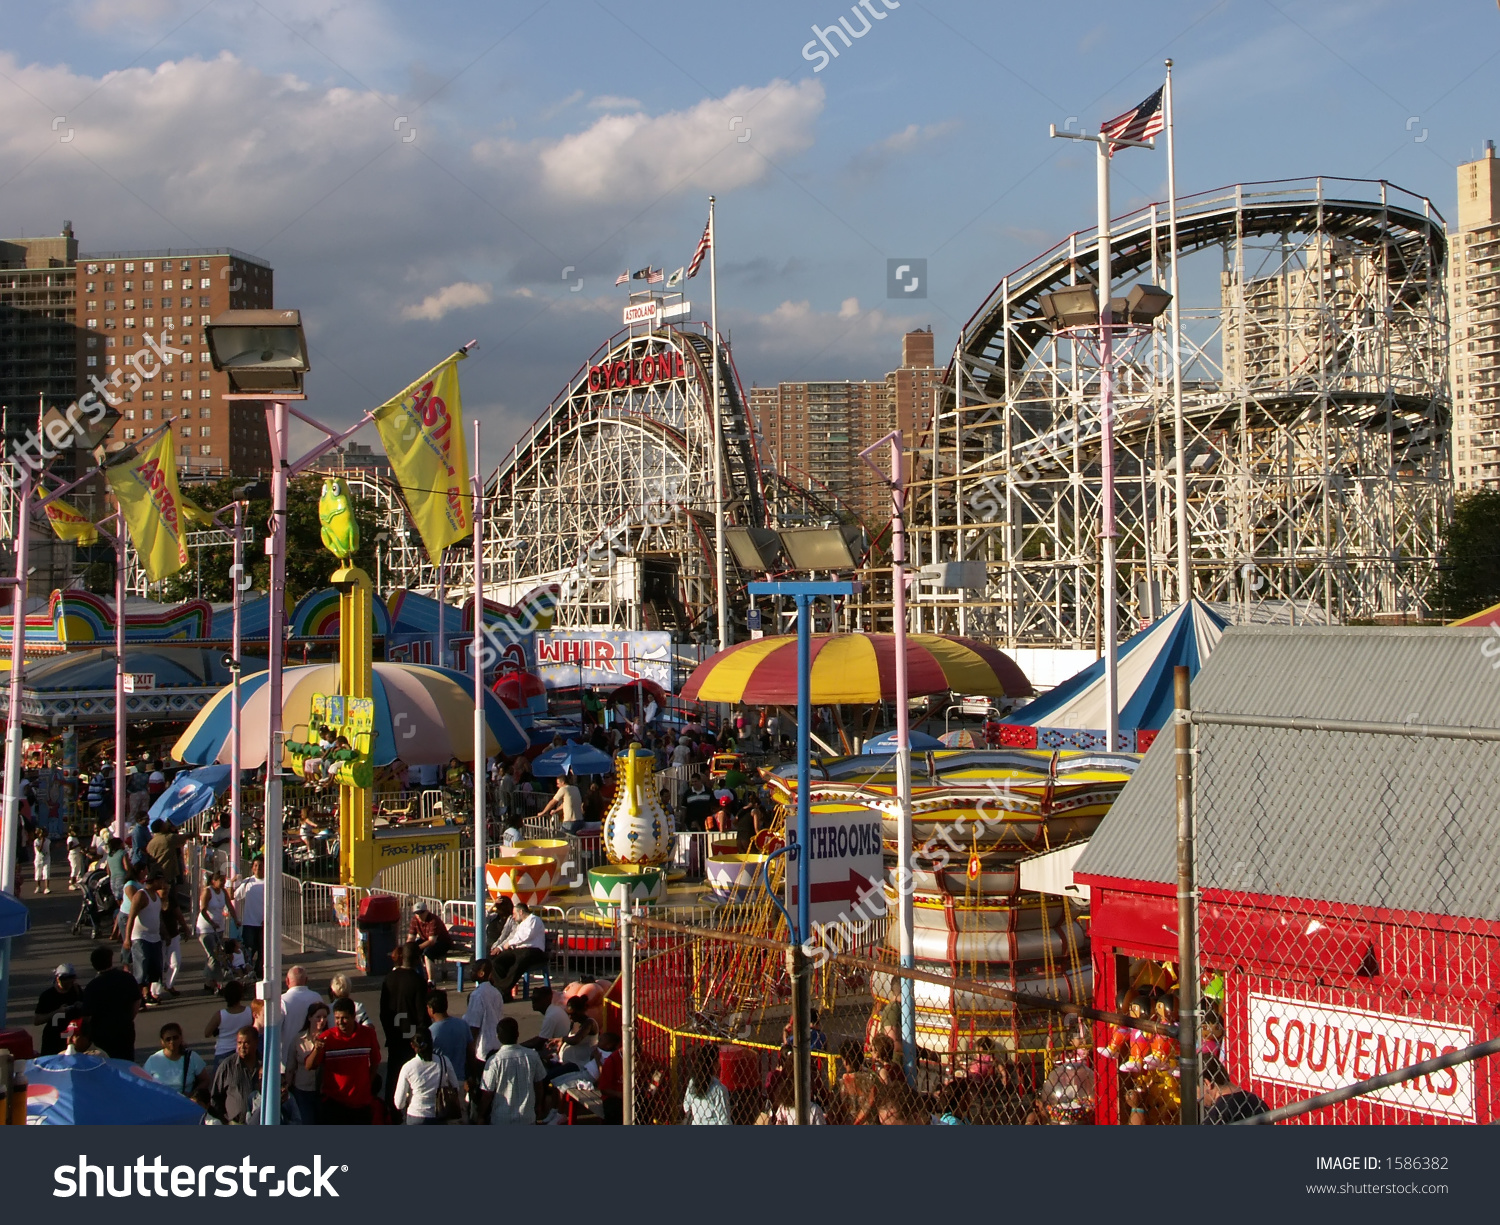 Coney Island Astroland Amusement Park Stock Photo 1586382.